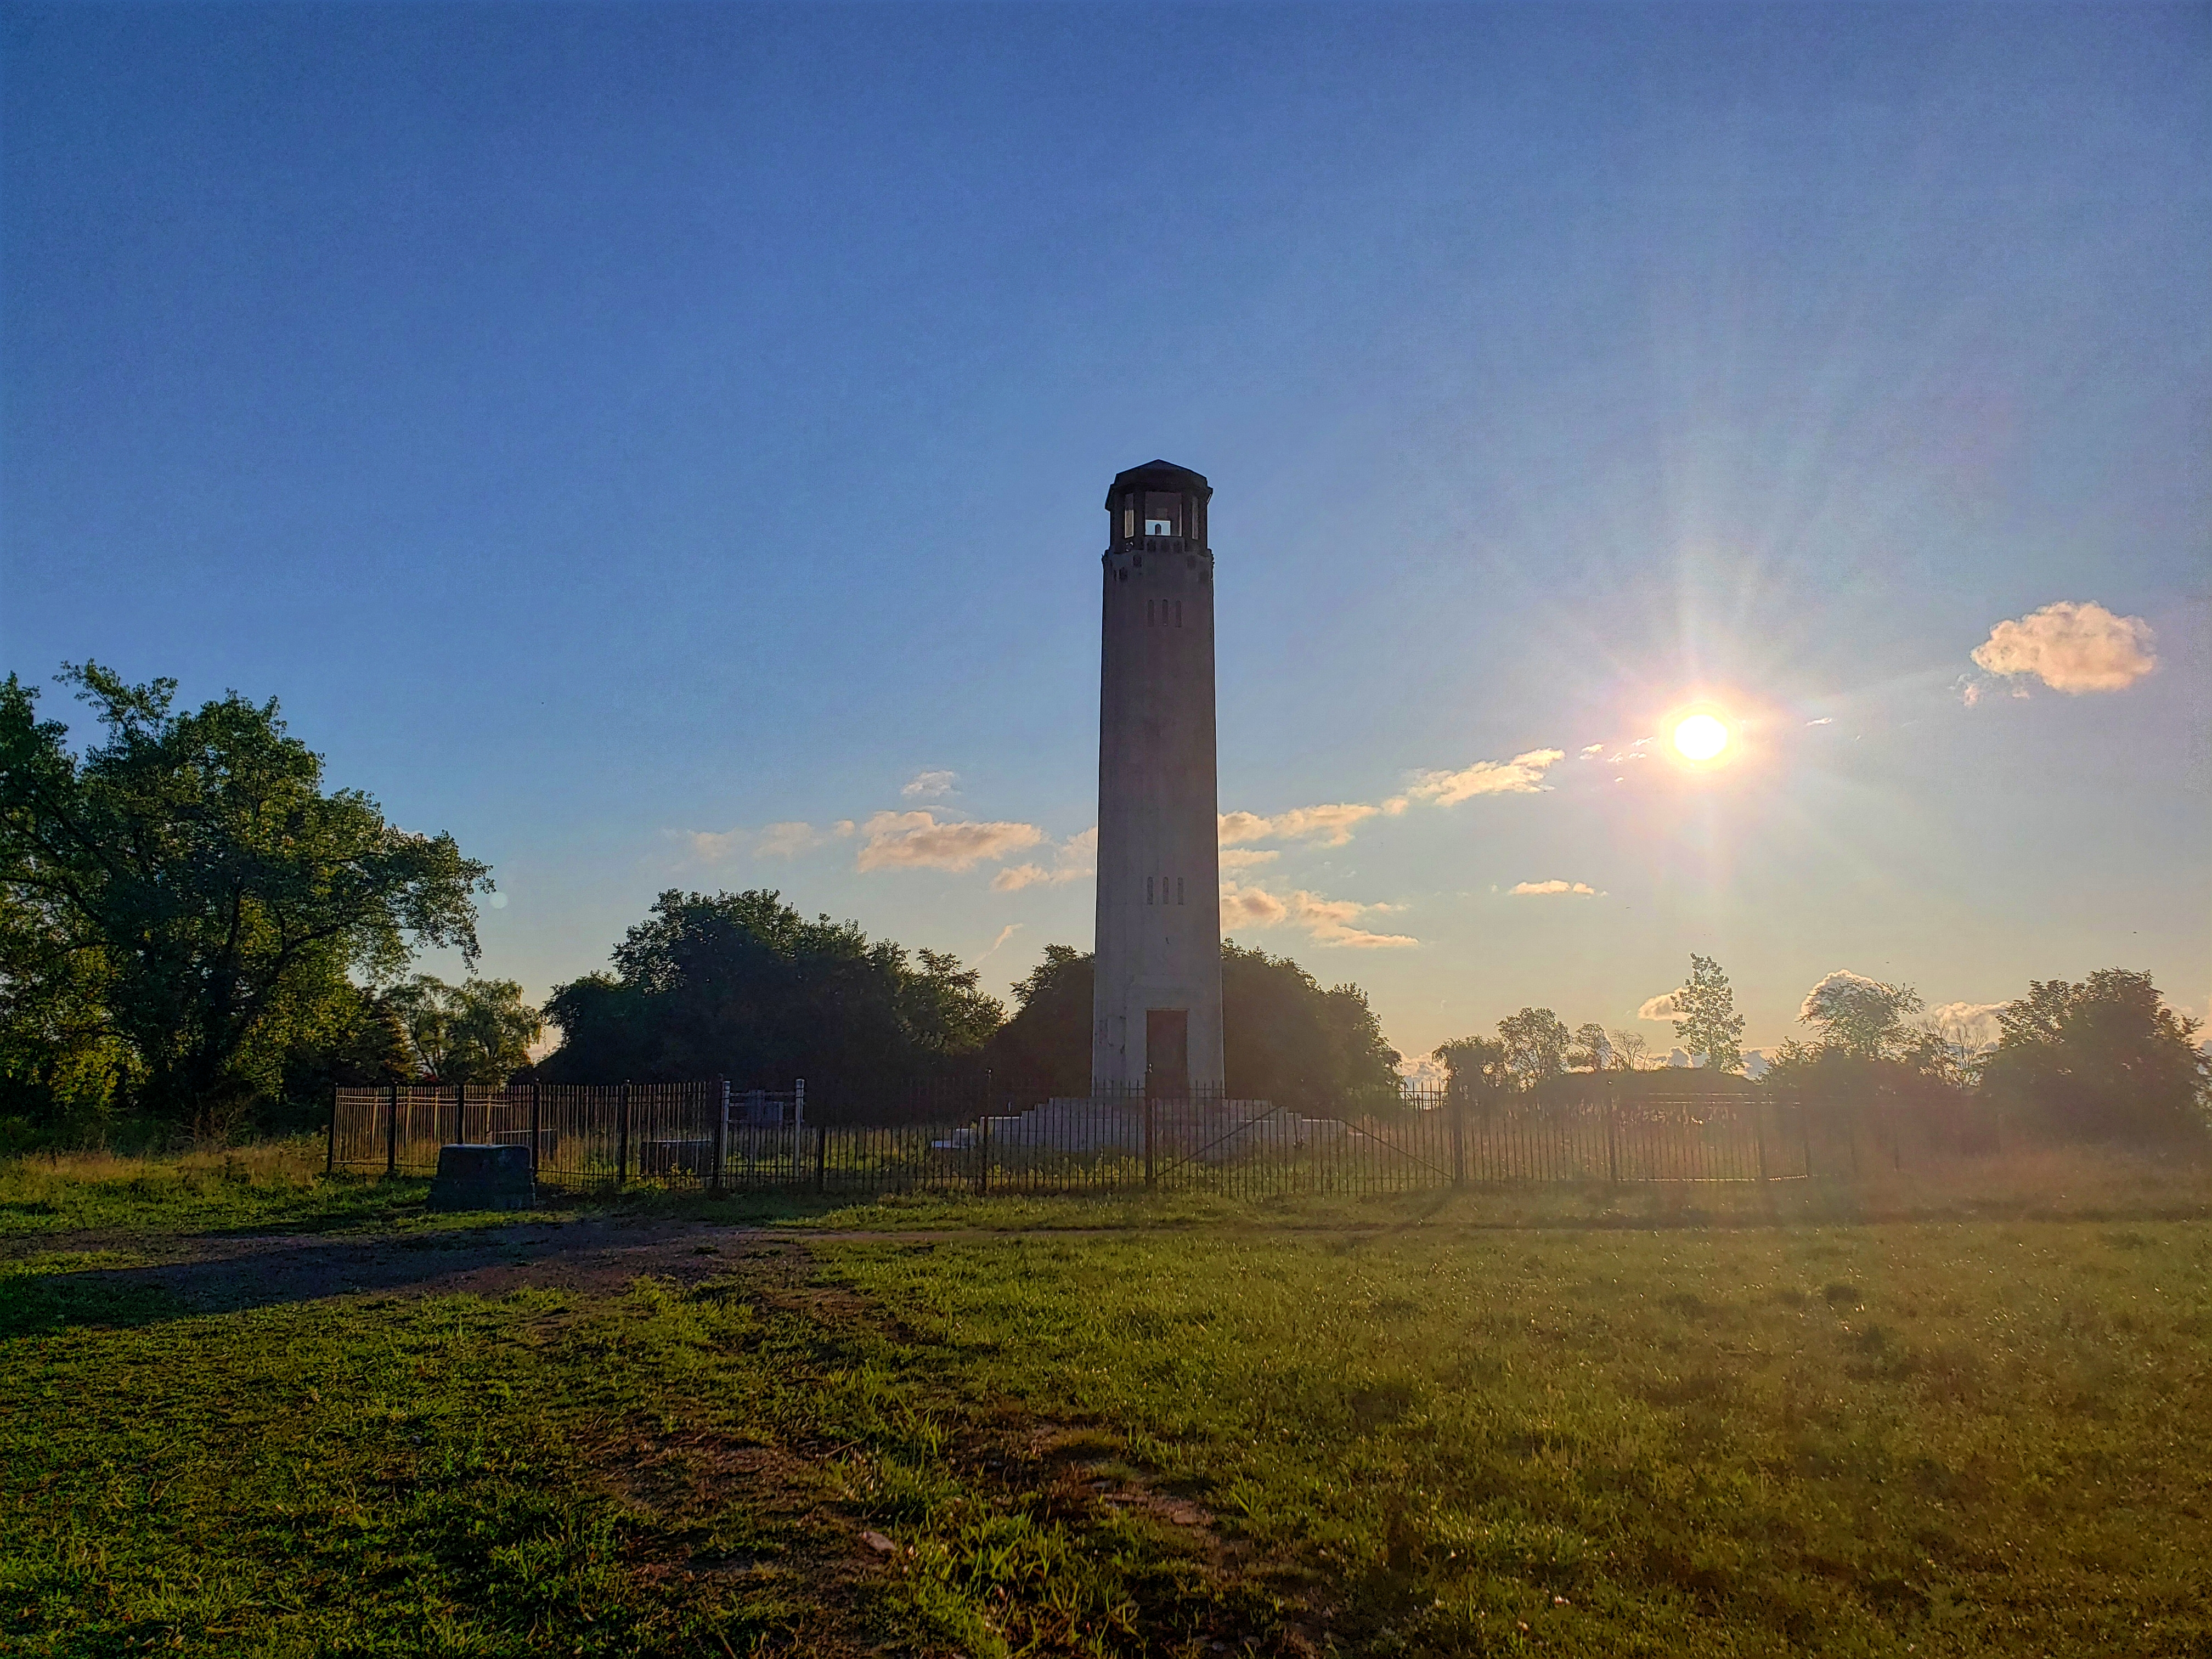 The Livingstone Memorial Light House is a land mark along the Blue Heron Lagoon Hiking trail on Belle Isle Michigan